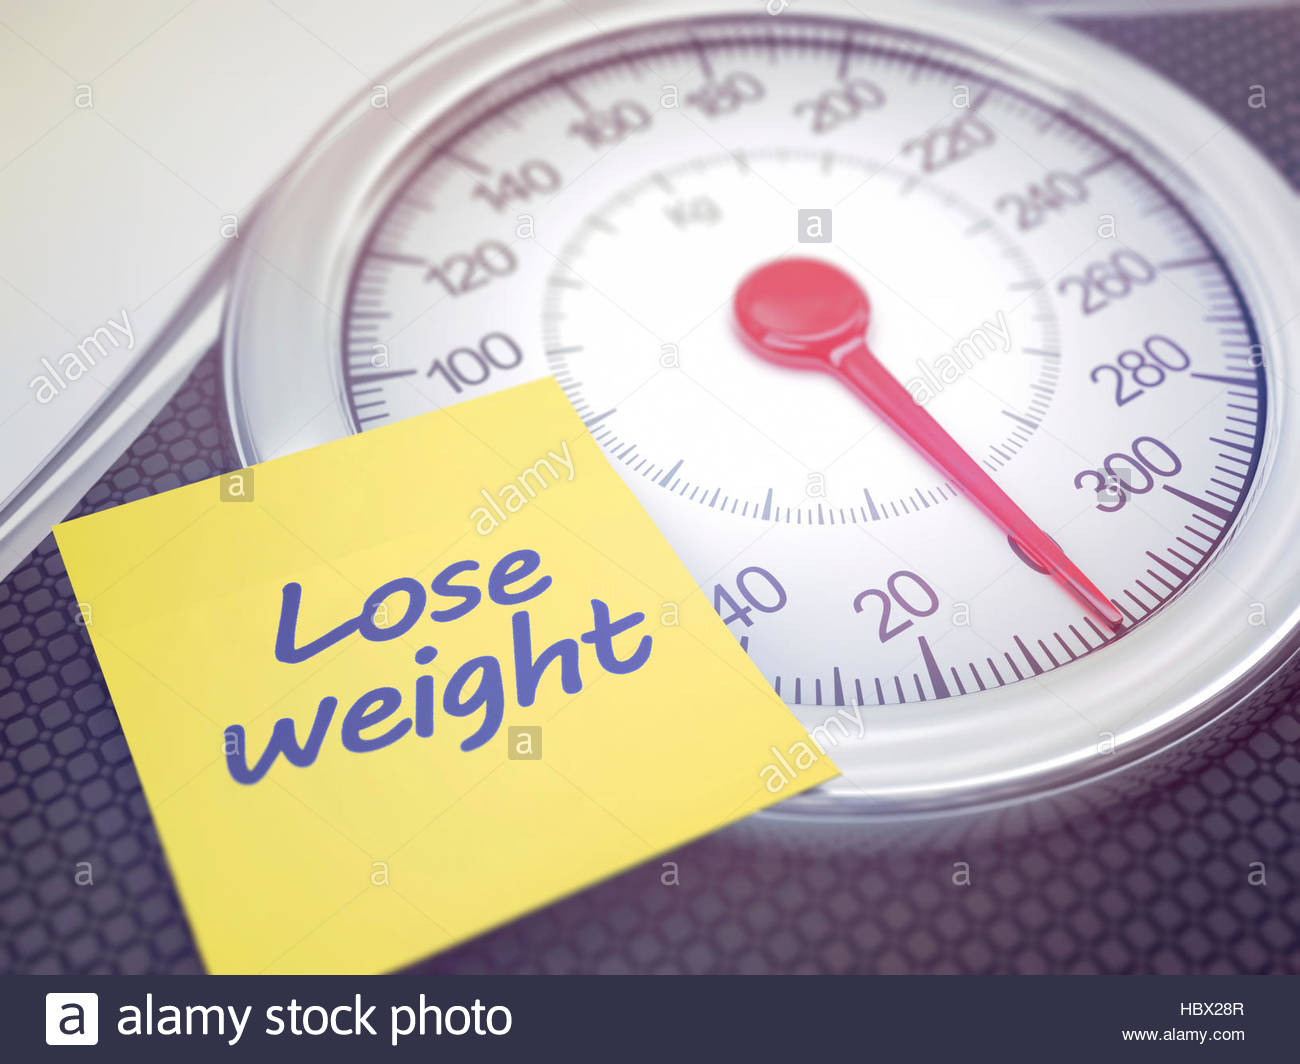 Weighing scales with note saying lose weight. - Stock Image